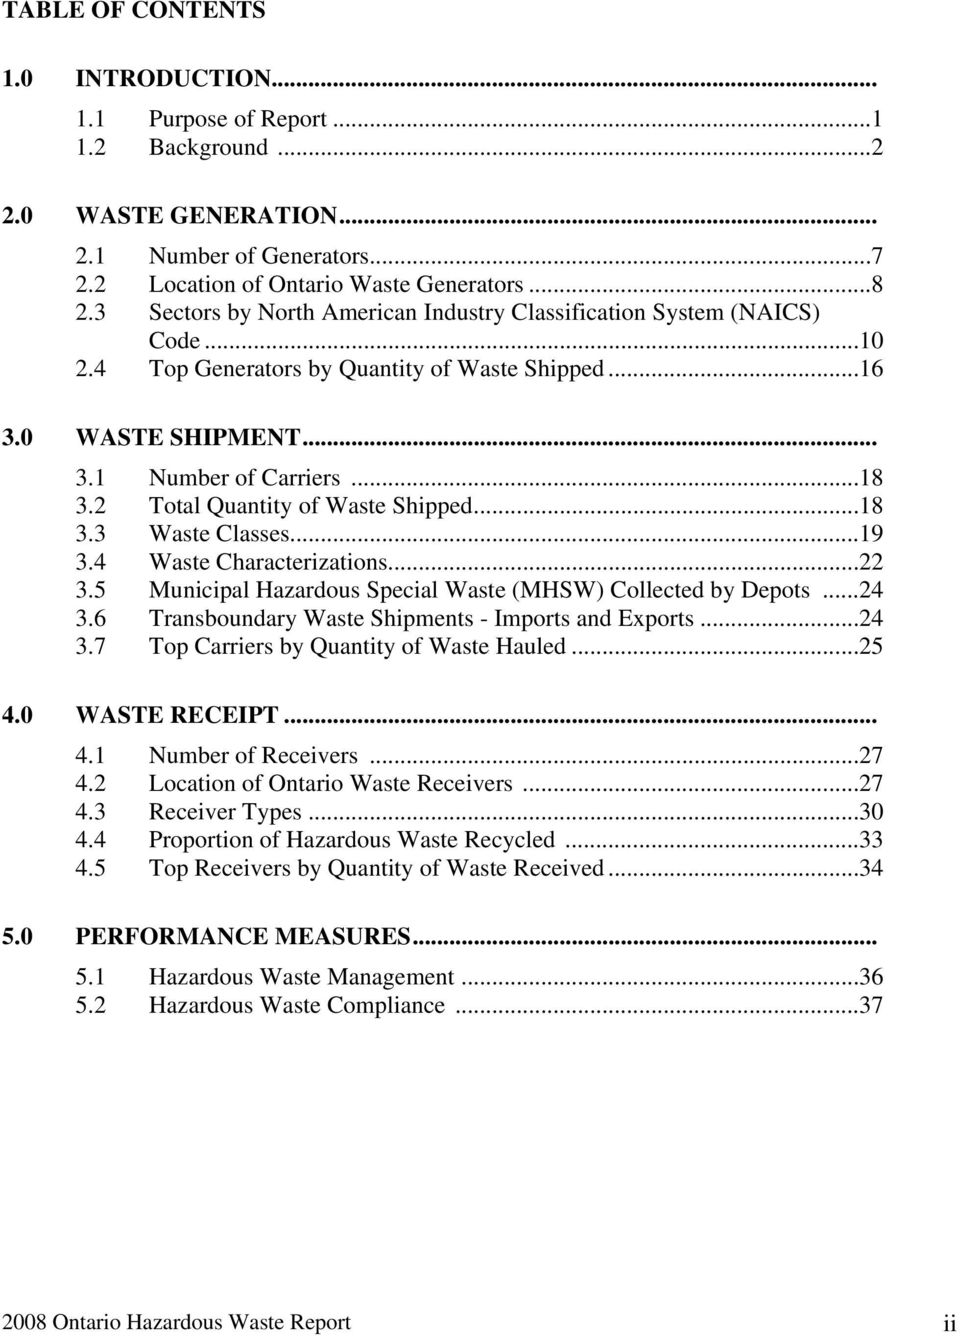 40 Cfr Endix To Part 262 Uniform Hazardous Waste Manifest And